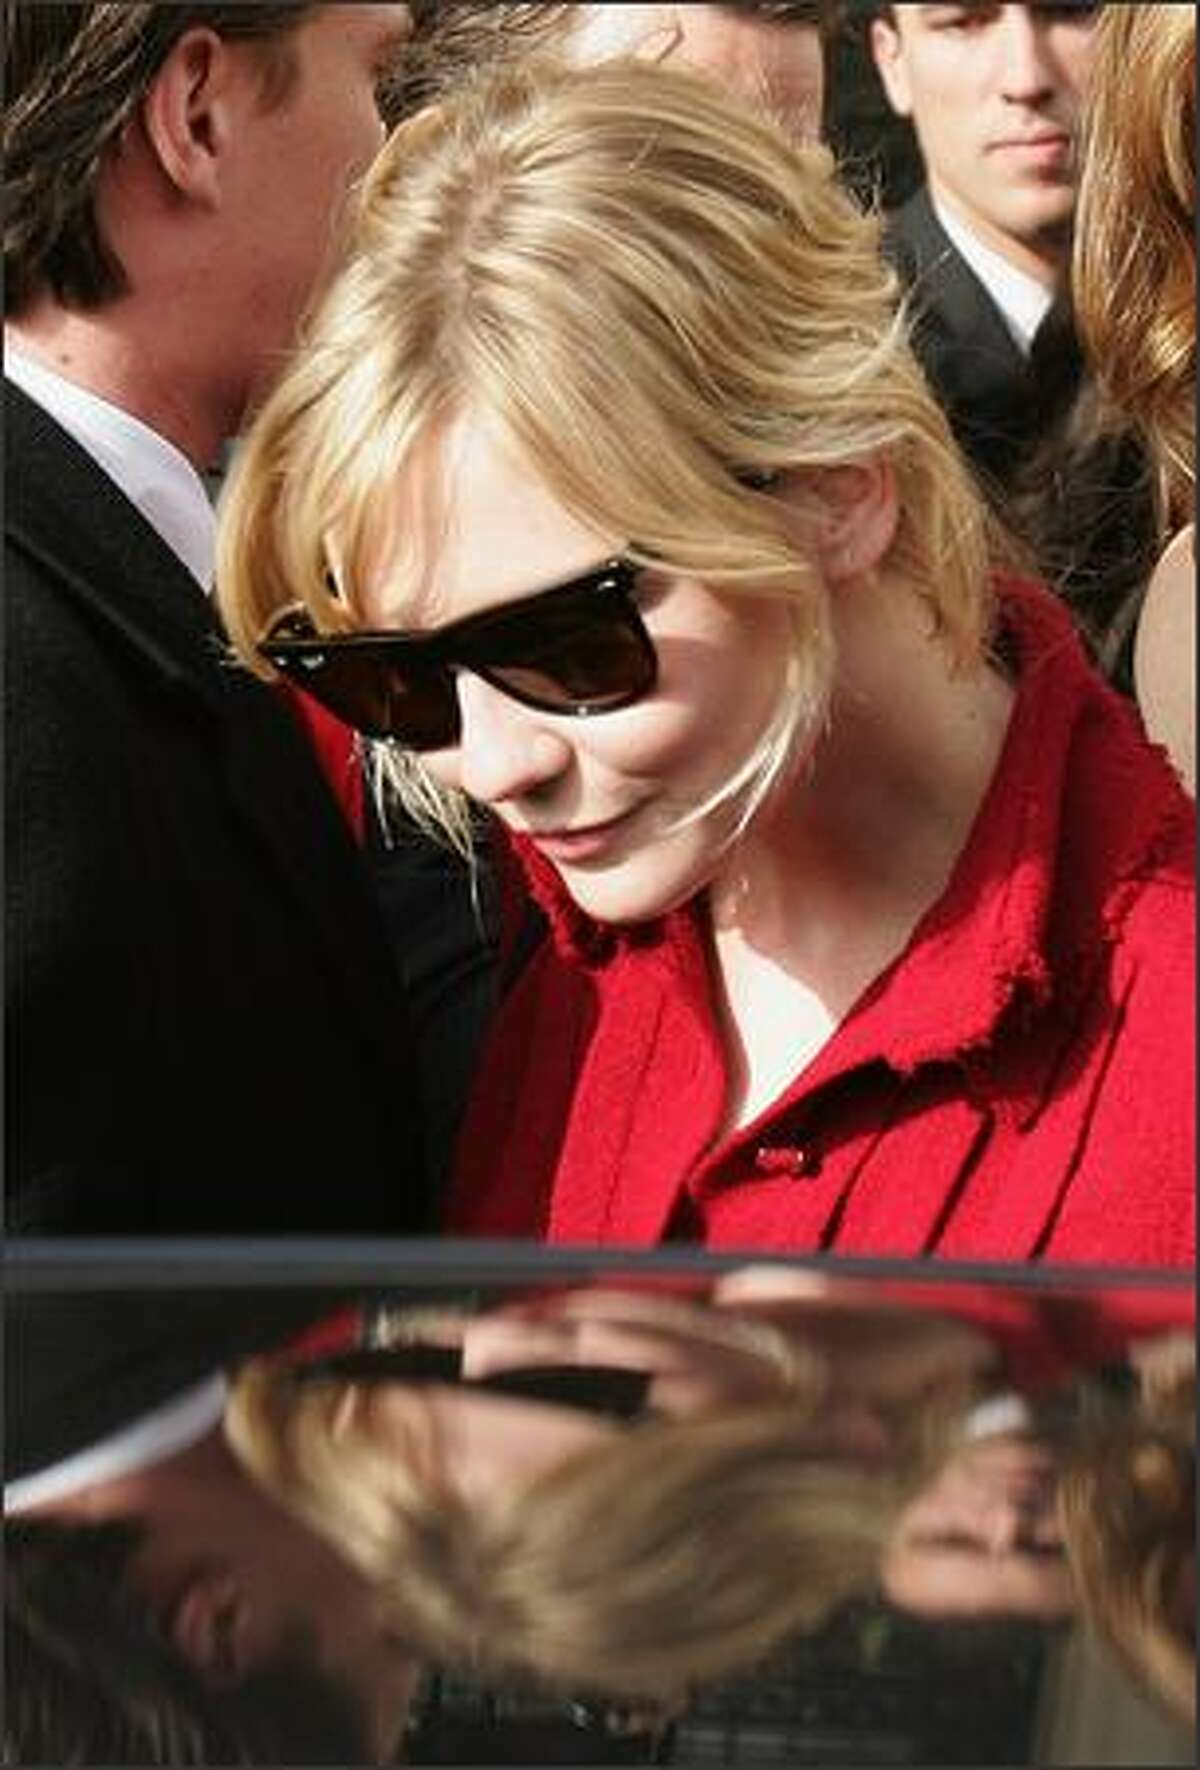 Actress Kirsten Dunst leaves after attending the Chanel Fashion show during the Paris Fashion Week Sp/Sum October 5, 2007 in Paris, France.